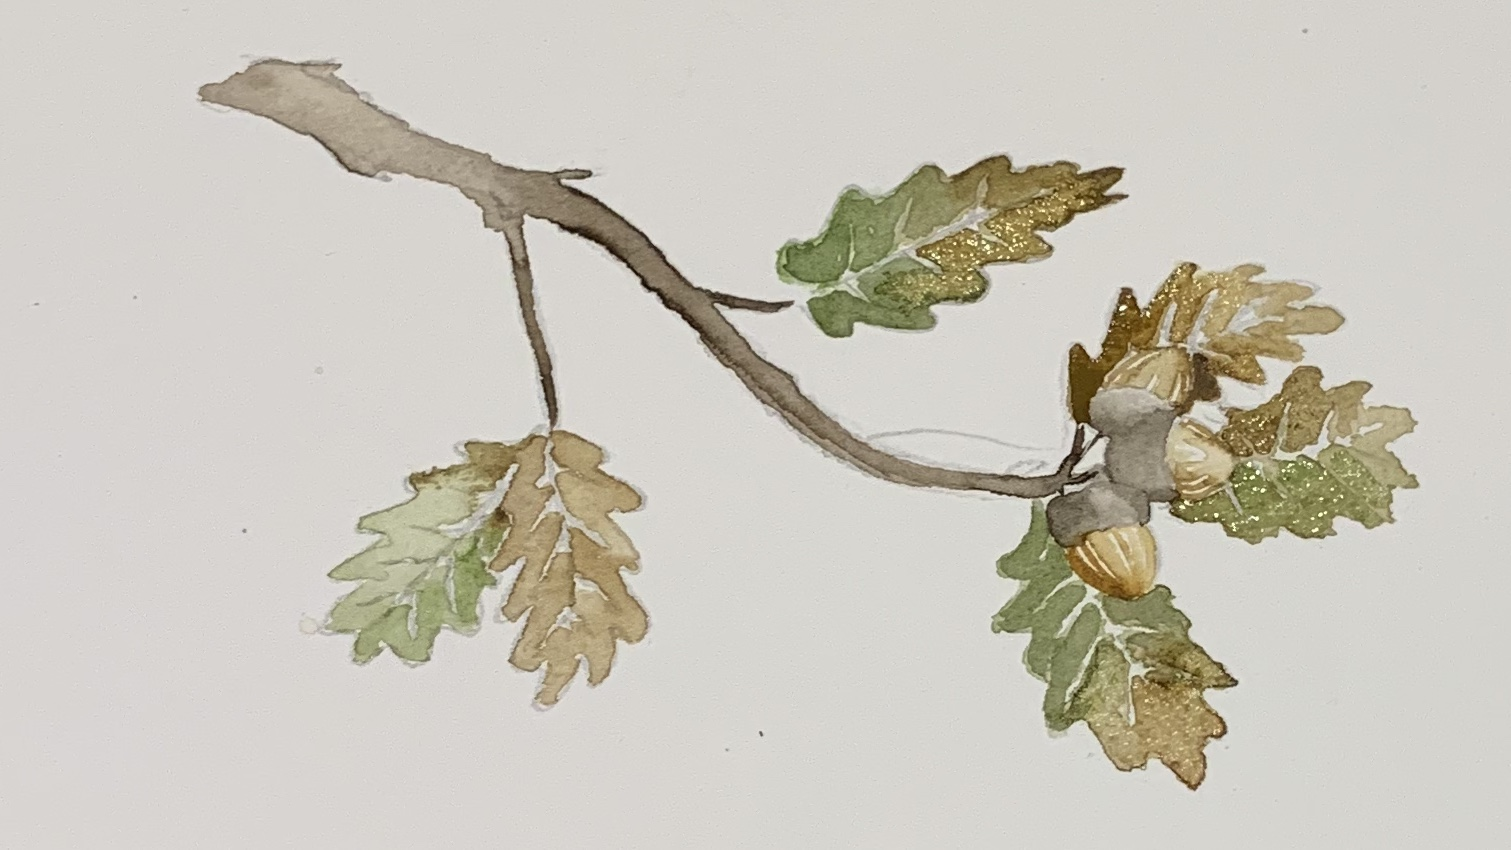 12. Once the painting is completely dry, repeat steps 6 & 7 by going over all the leaves a second time. Add a darker mix of black and burnt umber to the underside of the branch and the acorns.